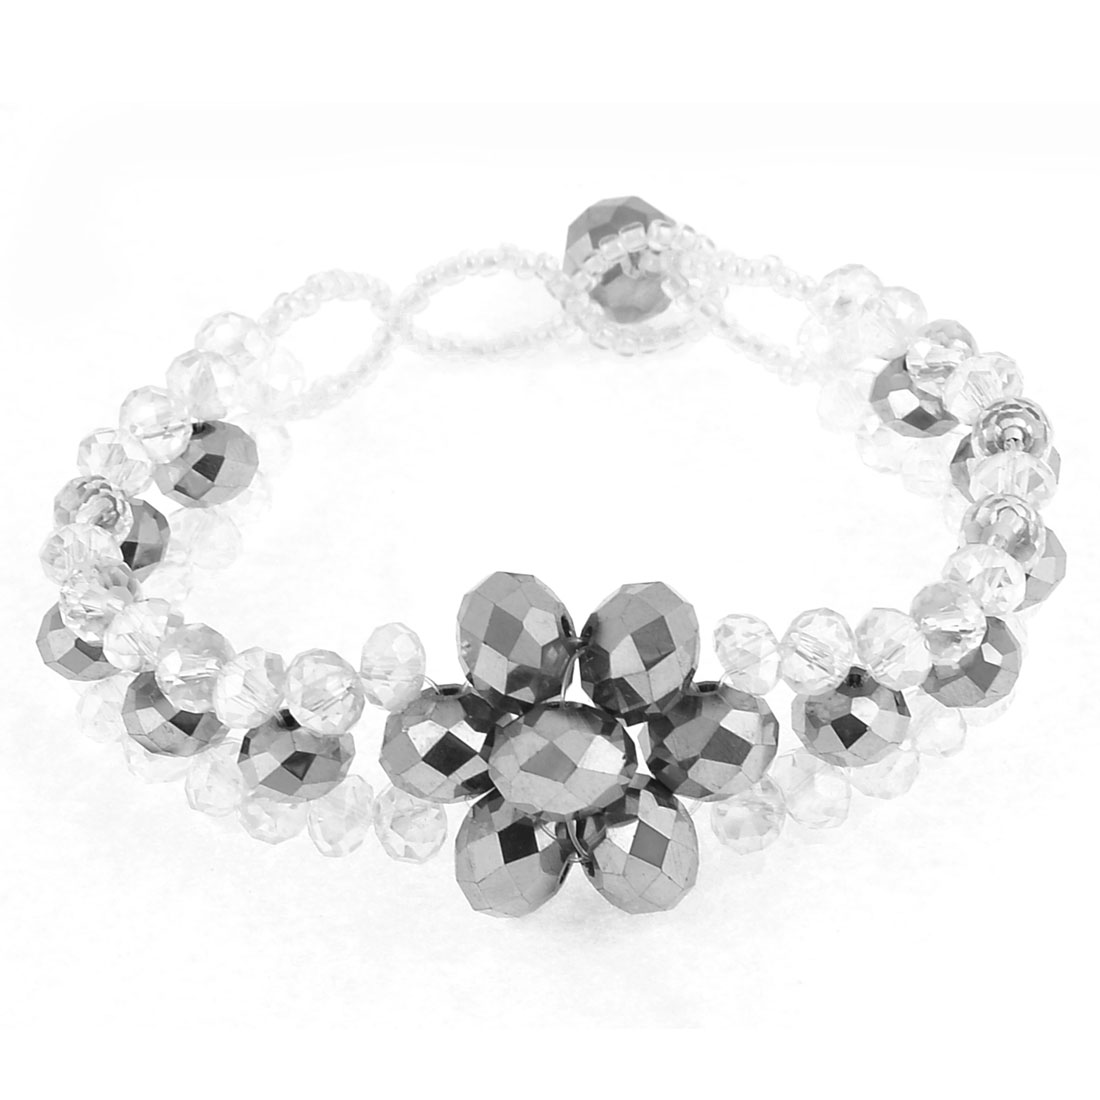 Clear Silver Tone Plastic Faceted Crystal Bracelet Gift for Friend